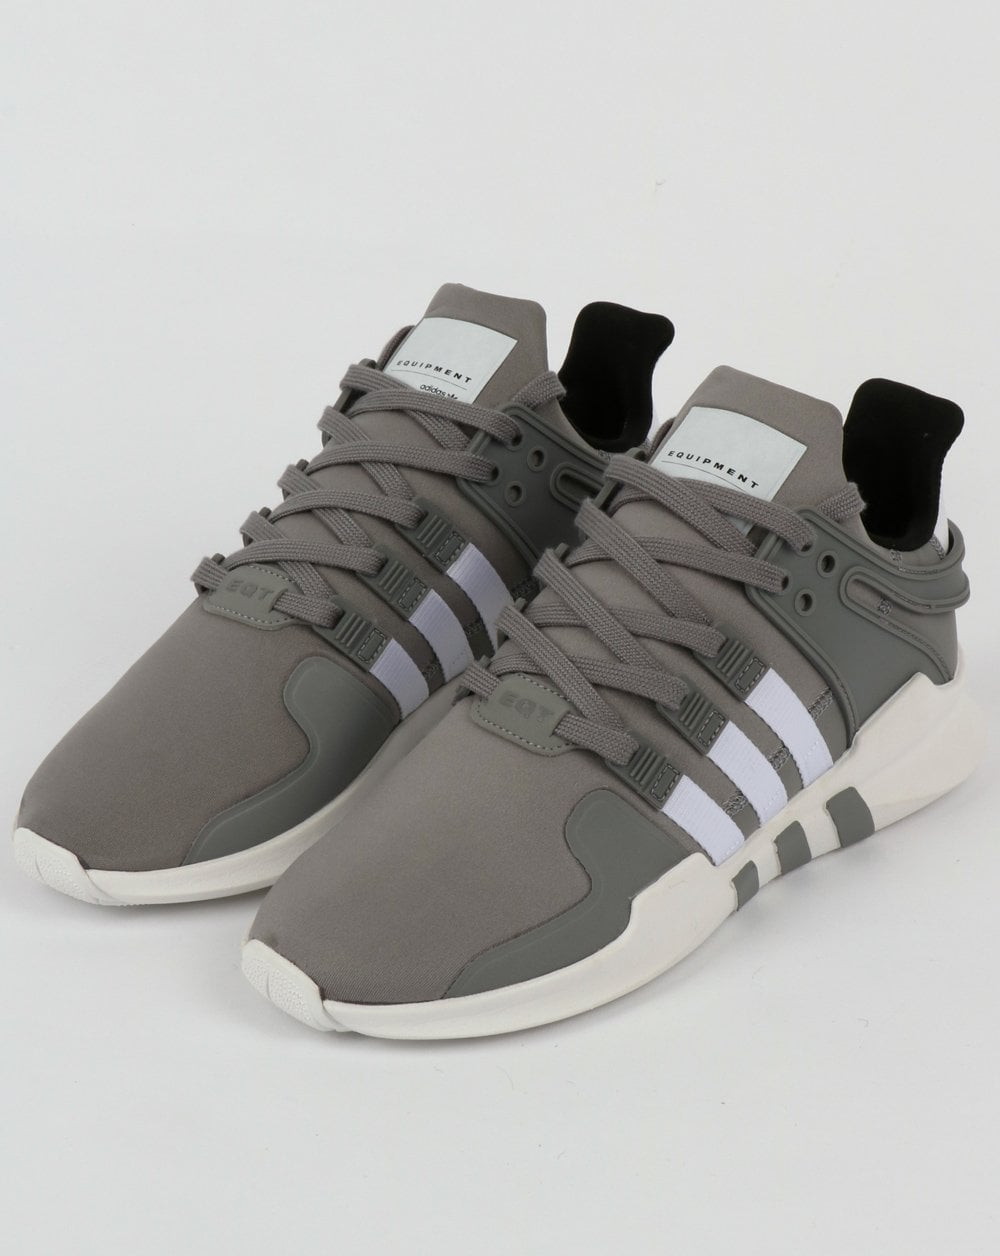 Adidas EQT Support Adv Trainers Grey